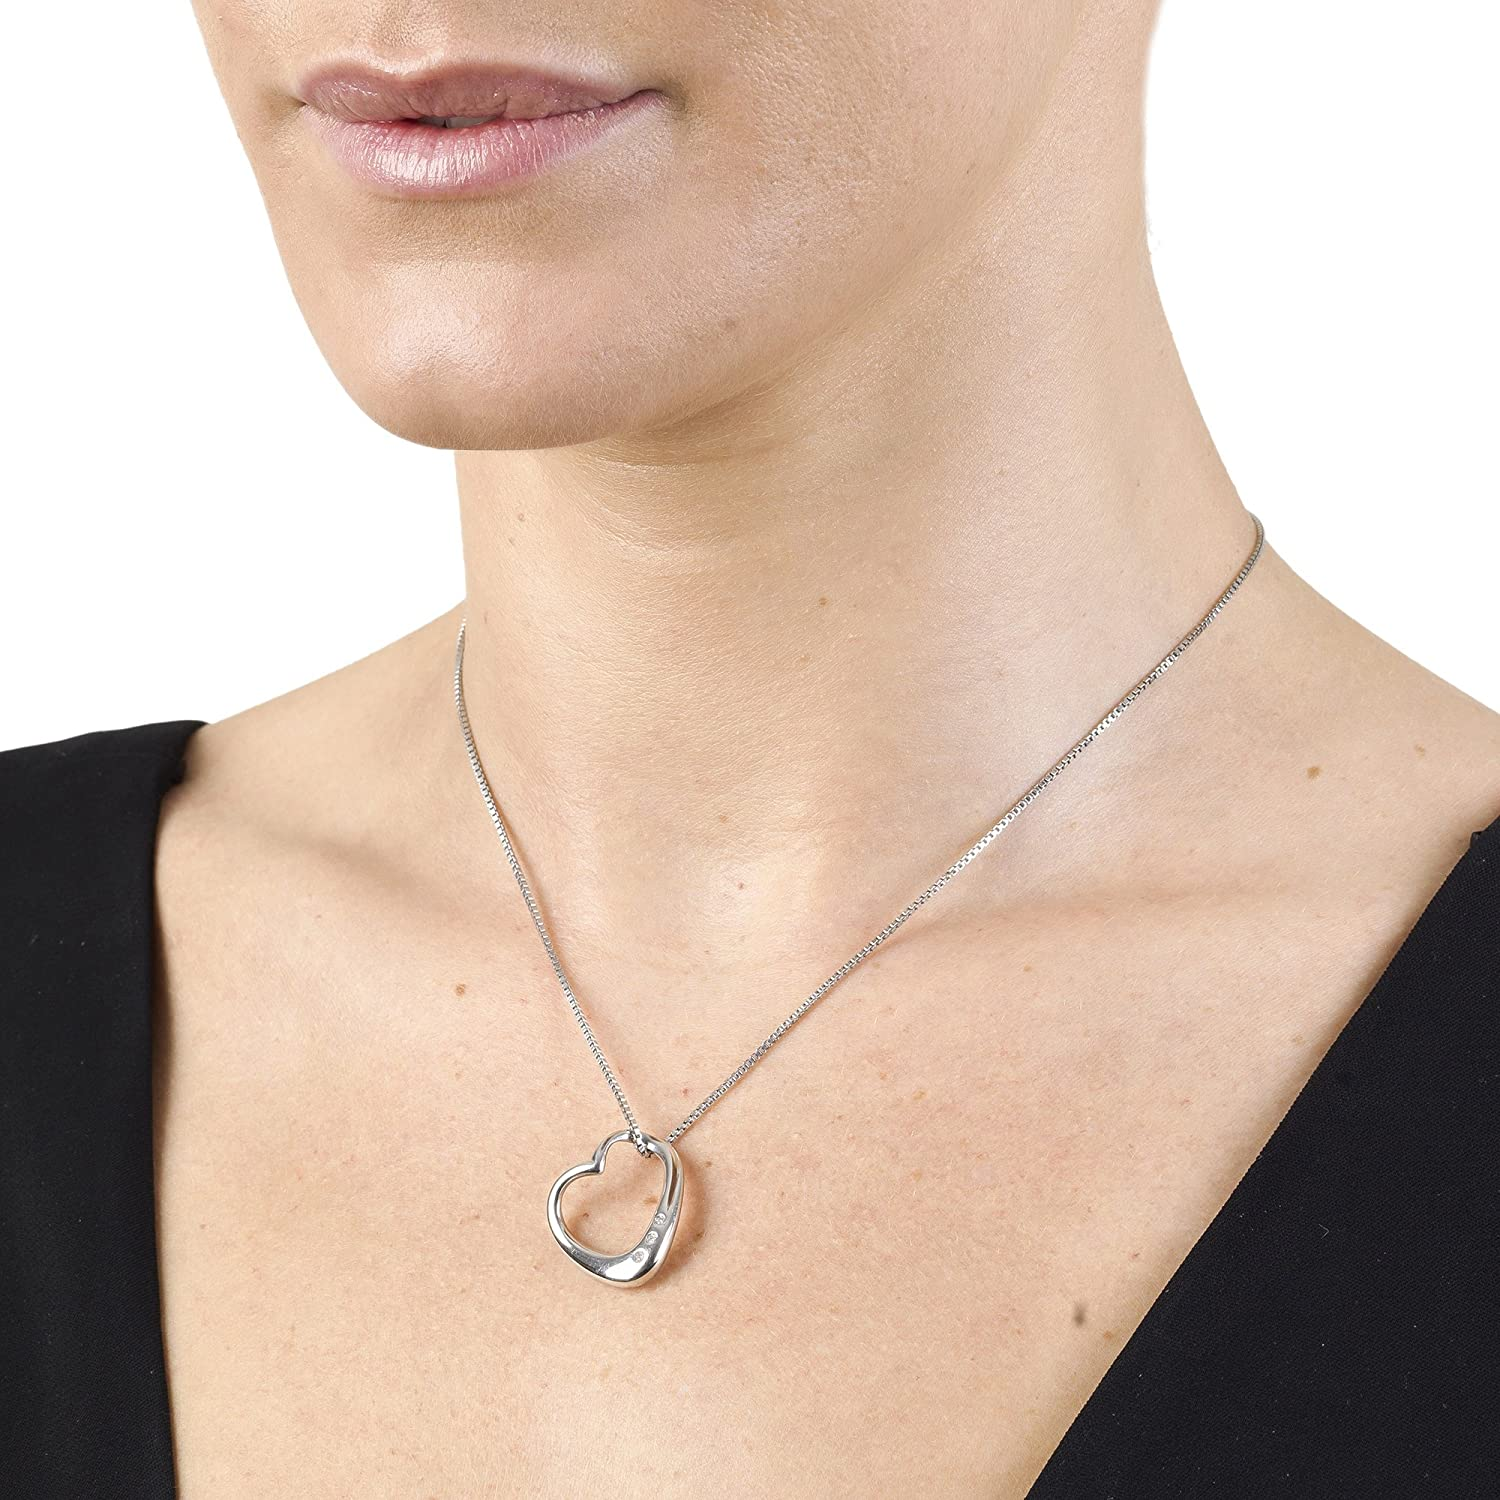 image diamonds necklace infinity hot heart from jewellery ladies